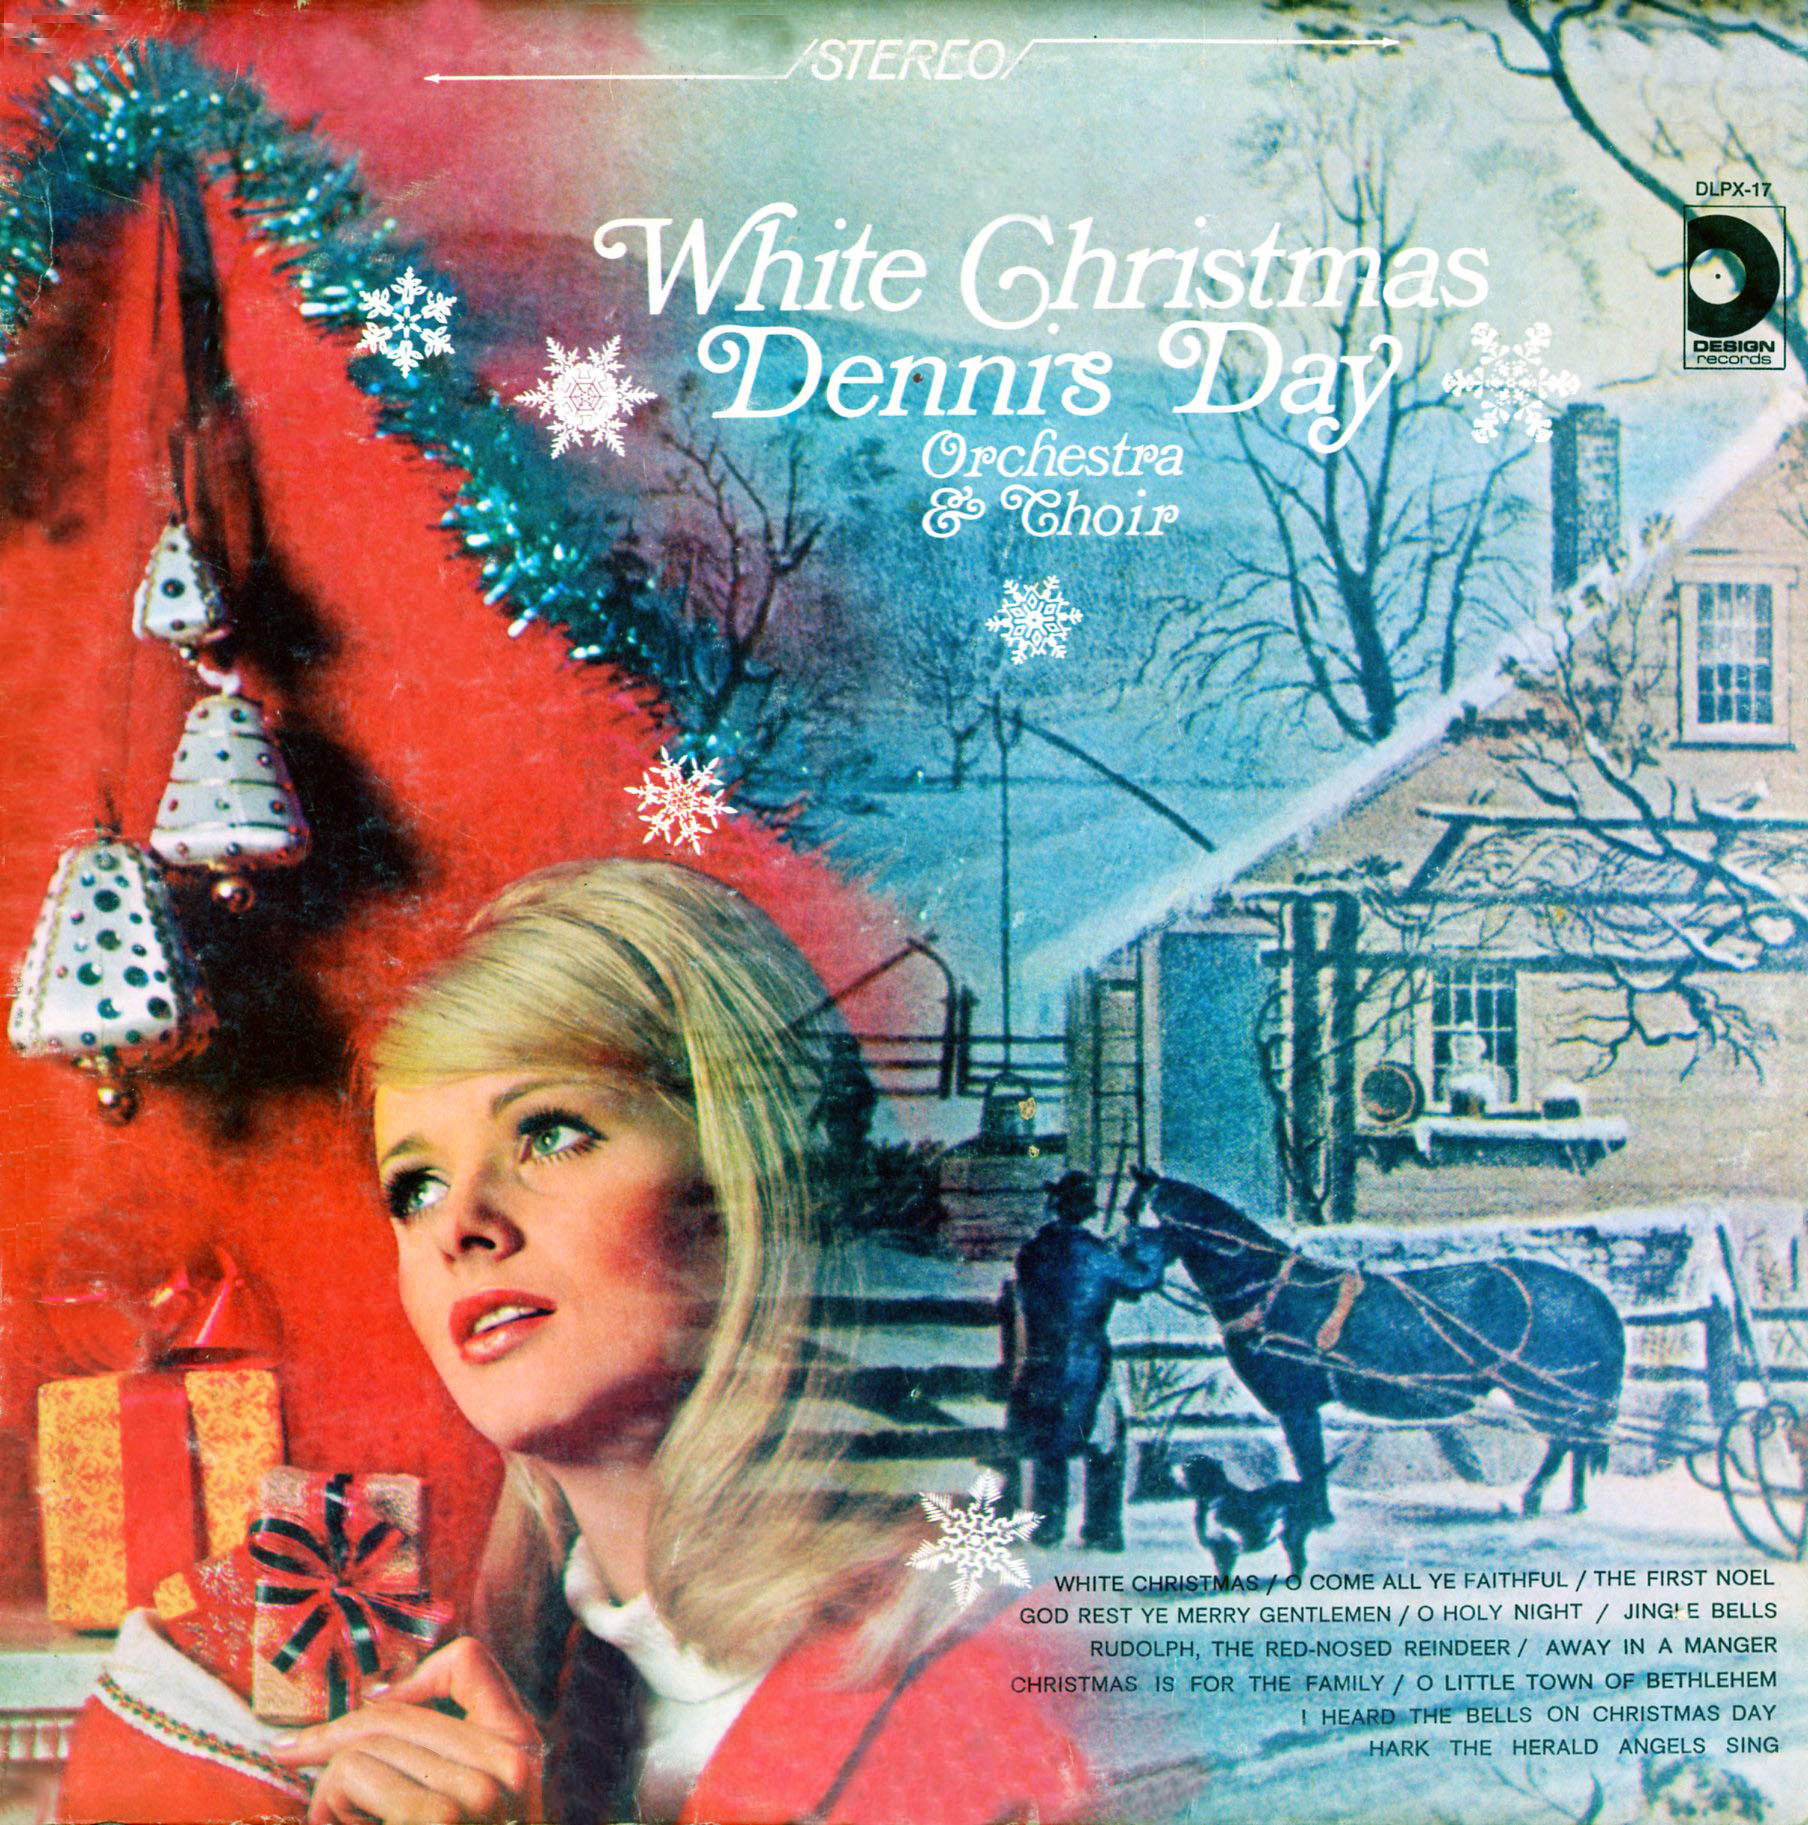 Ye O Diwani Cg Album Song Day Dennis White Christmas Orchestra And Choir Dlpx17